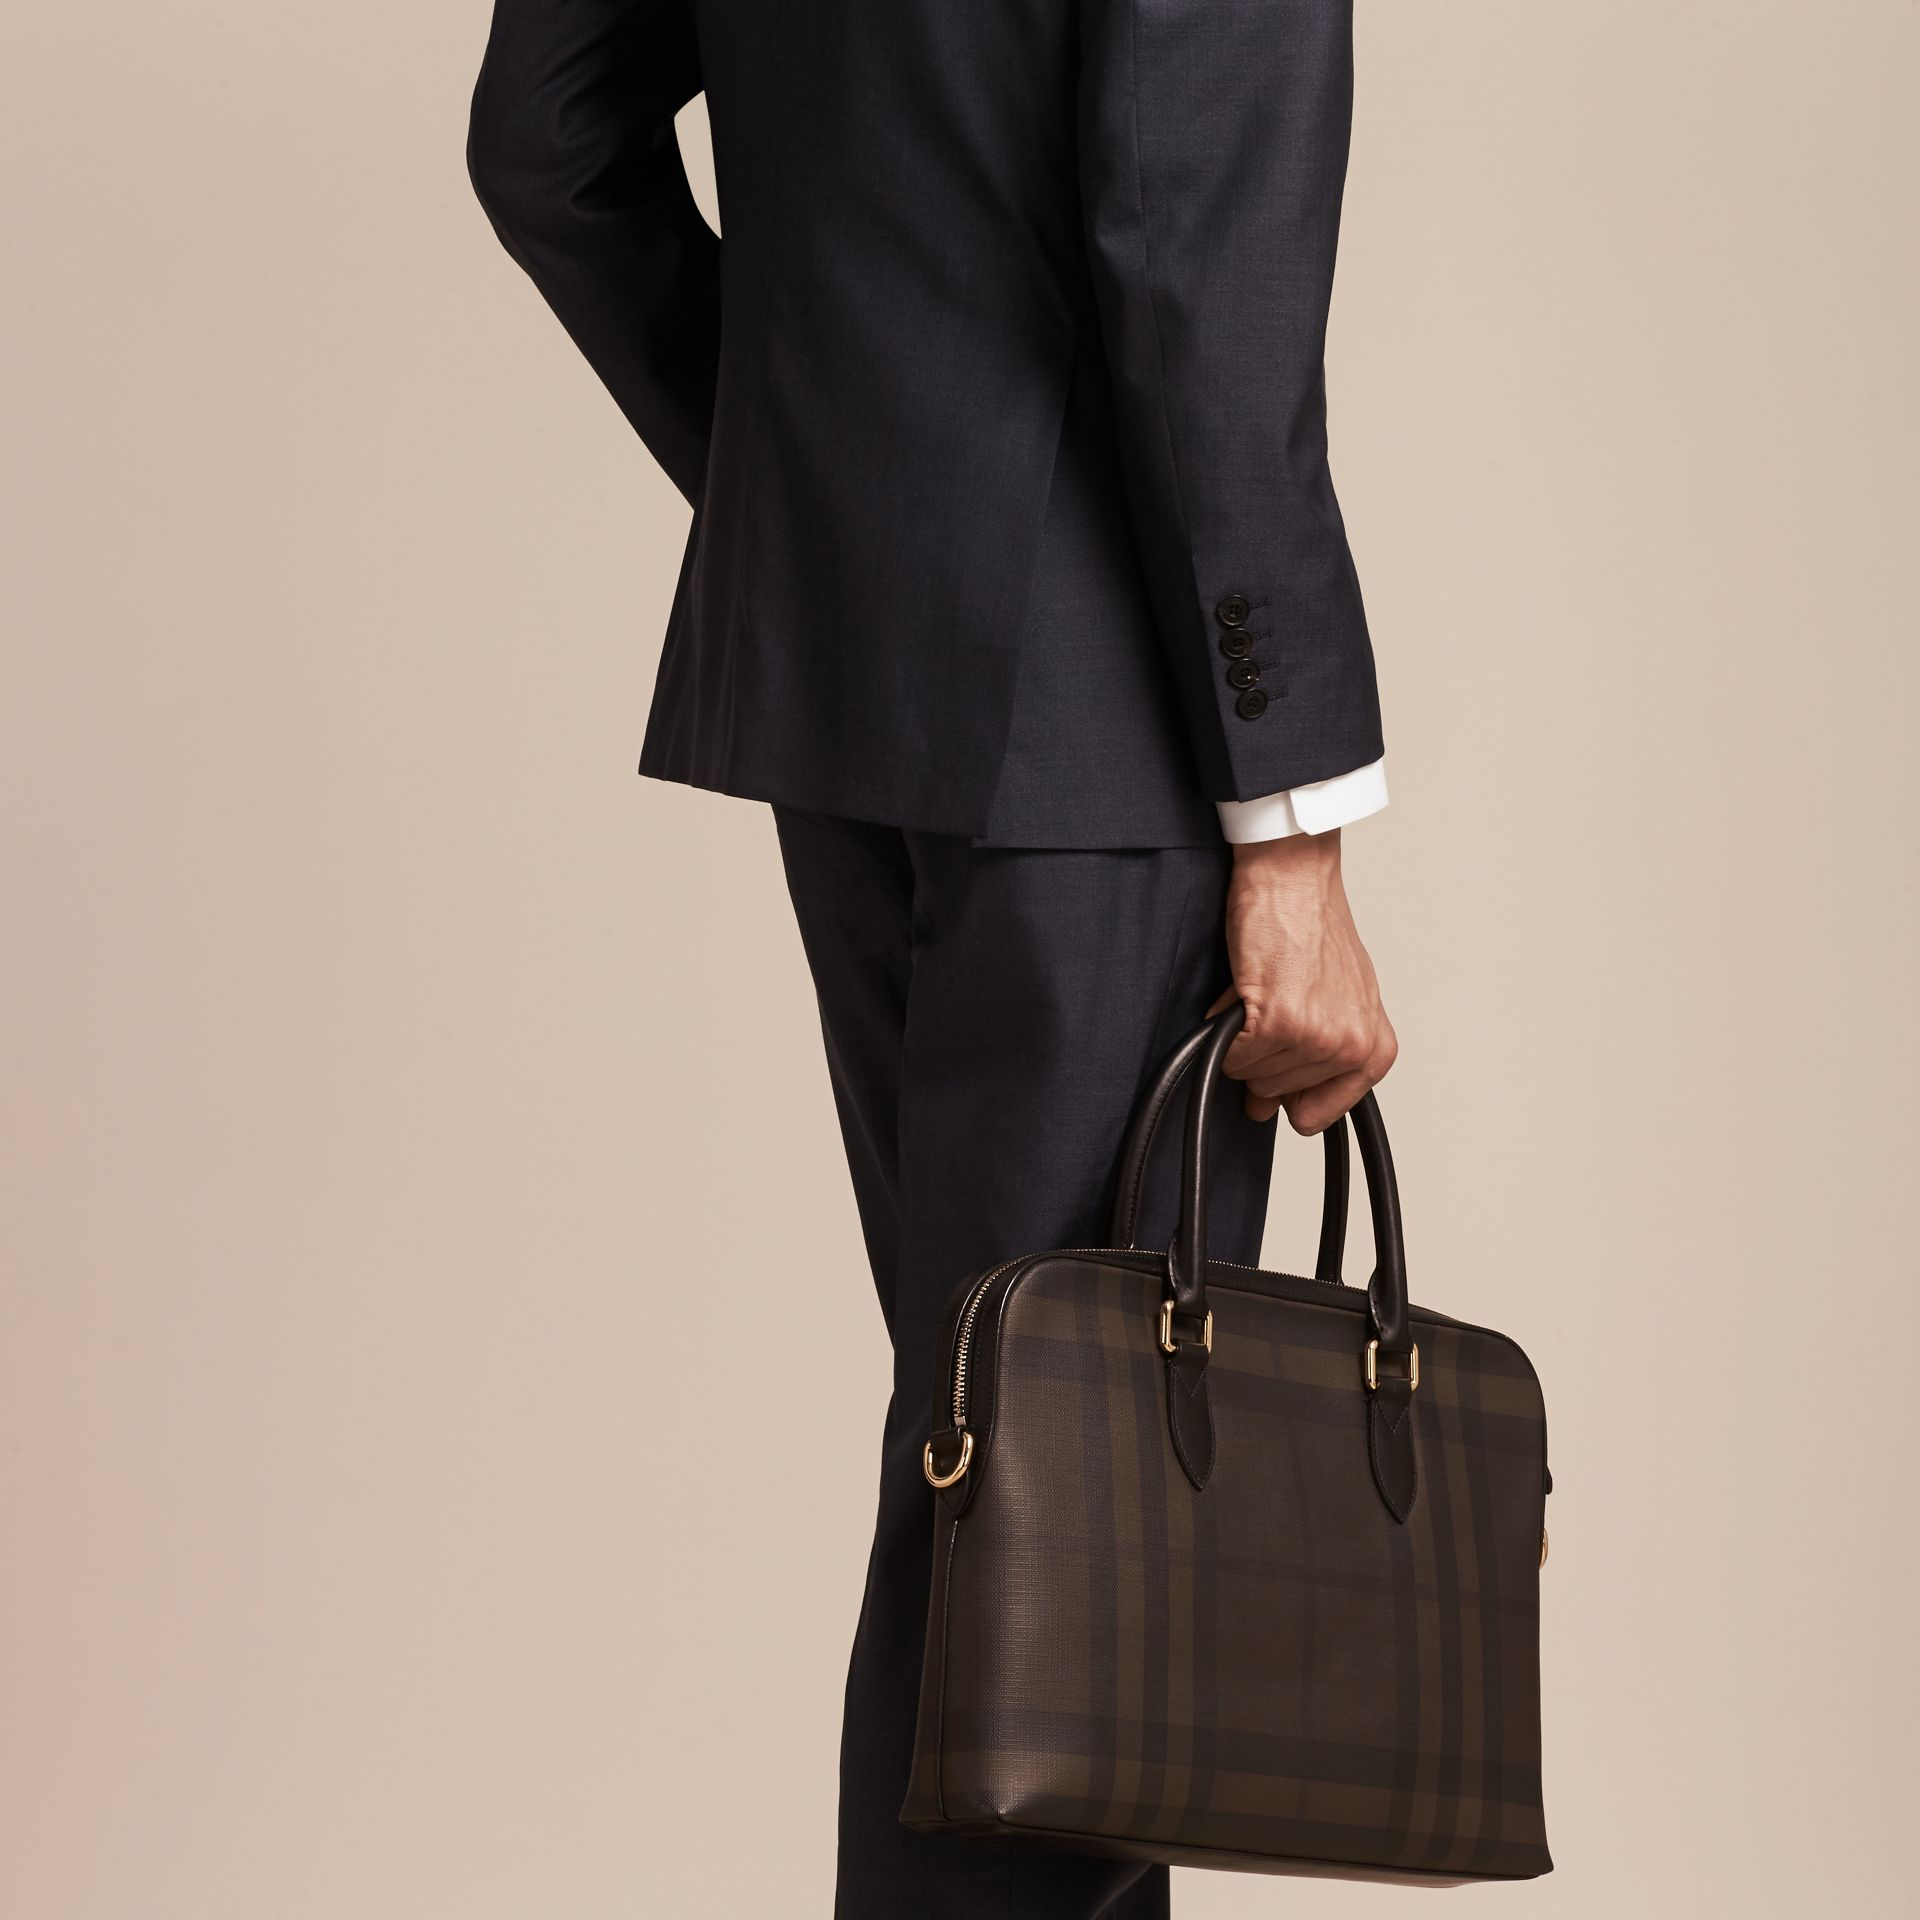 Sac The Barrow fin avec motif London check Chocolat/noir - photo de la galerie 3